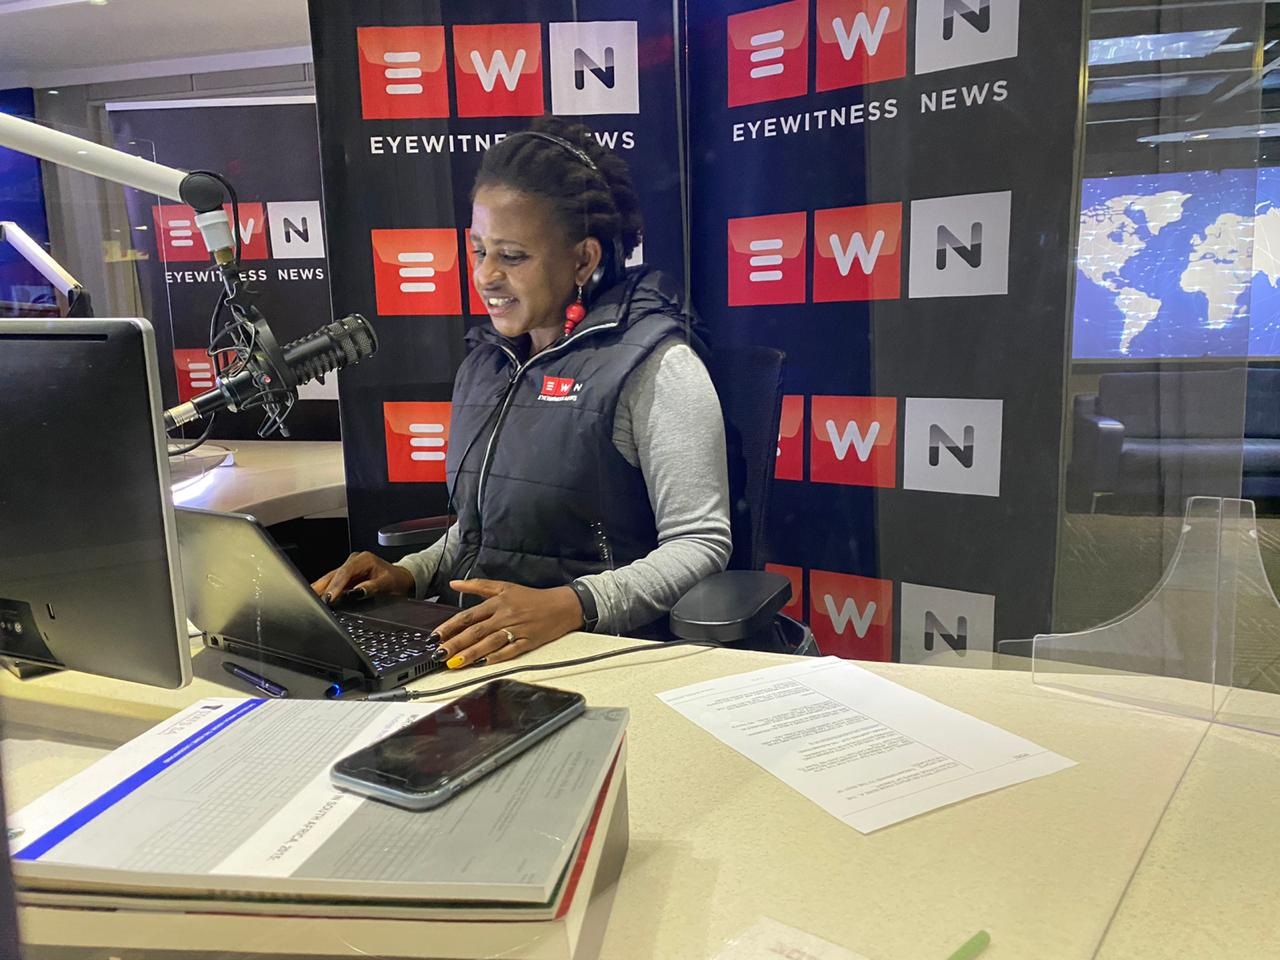 WATCH: Inside EWN Round Table with Adriaan Basson and Nwabisa Makunga